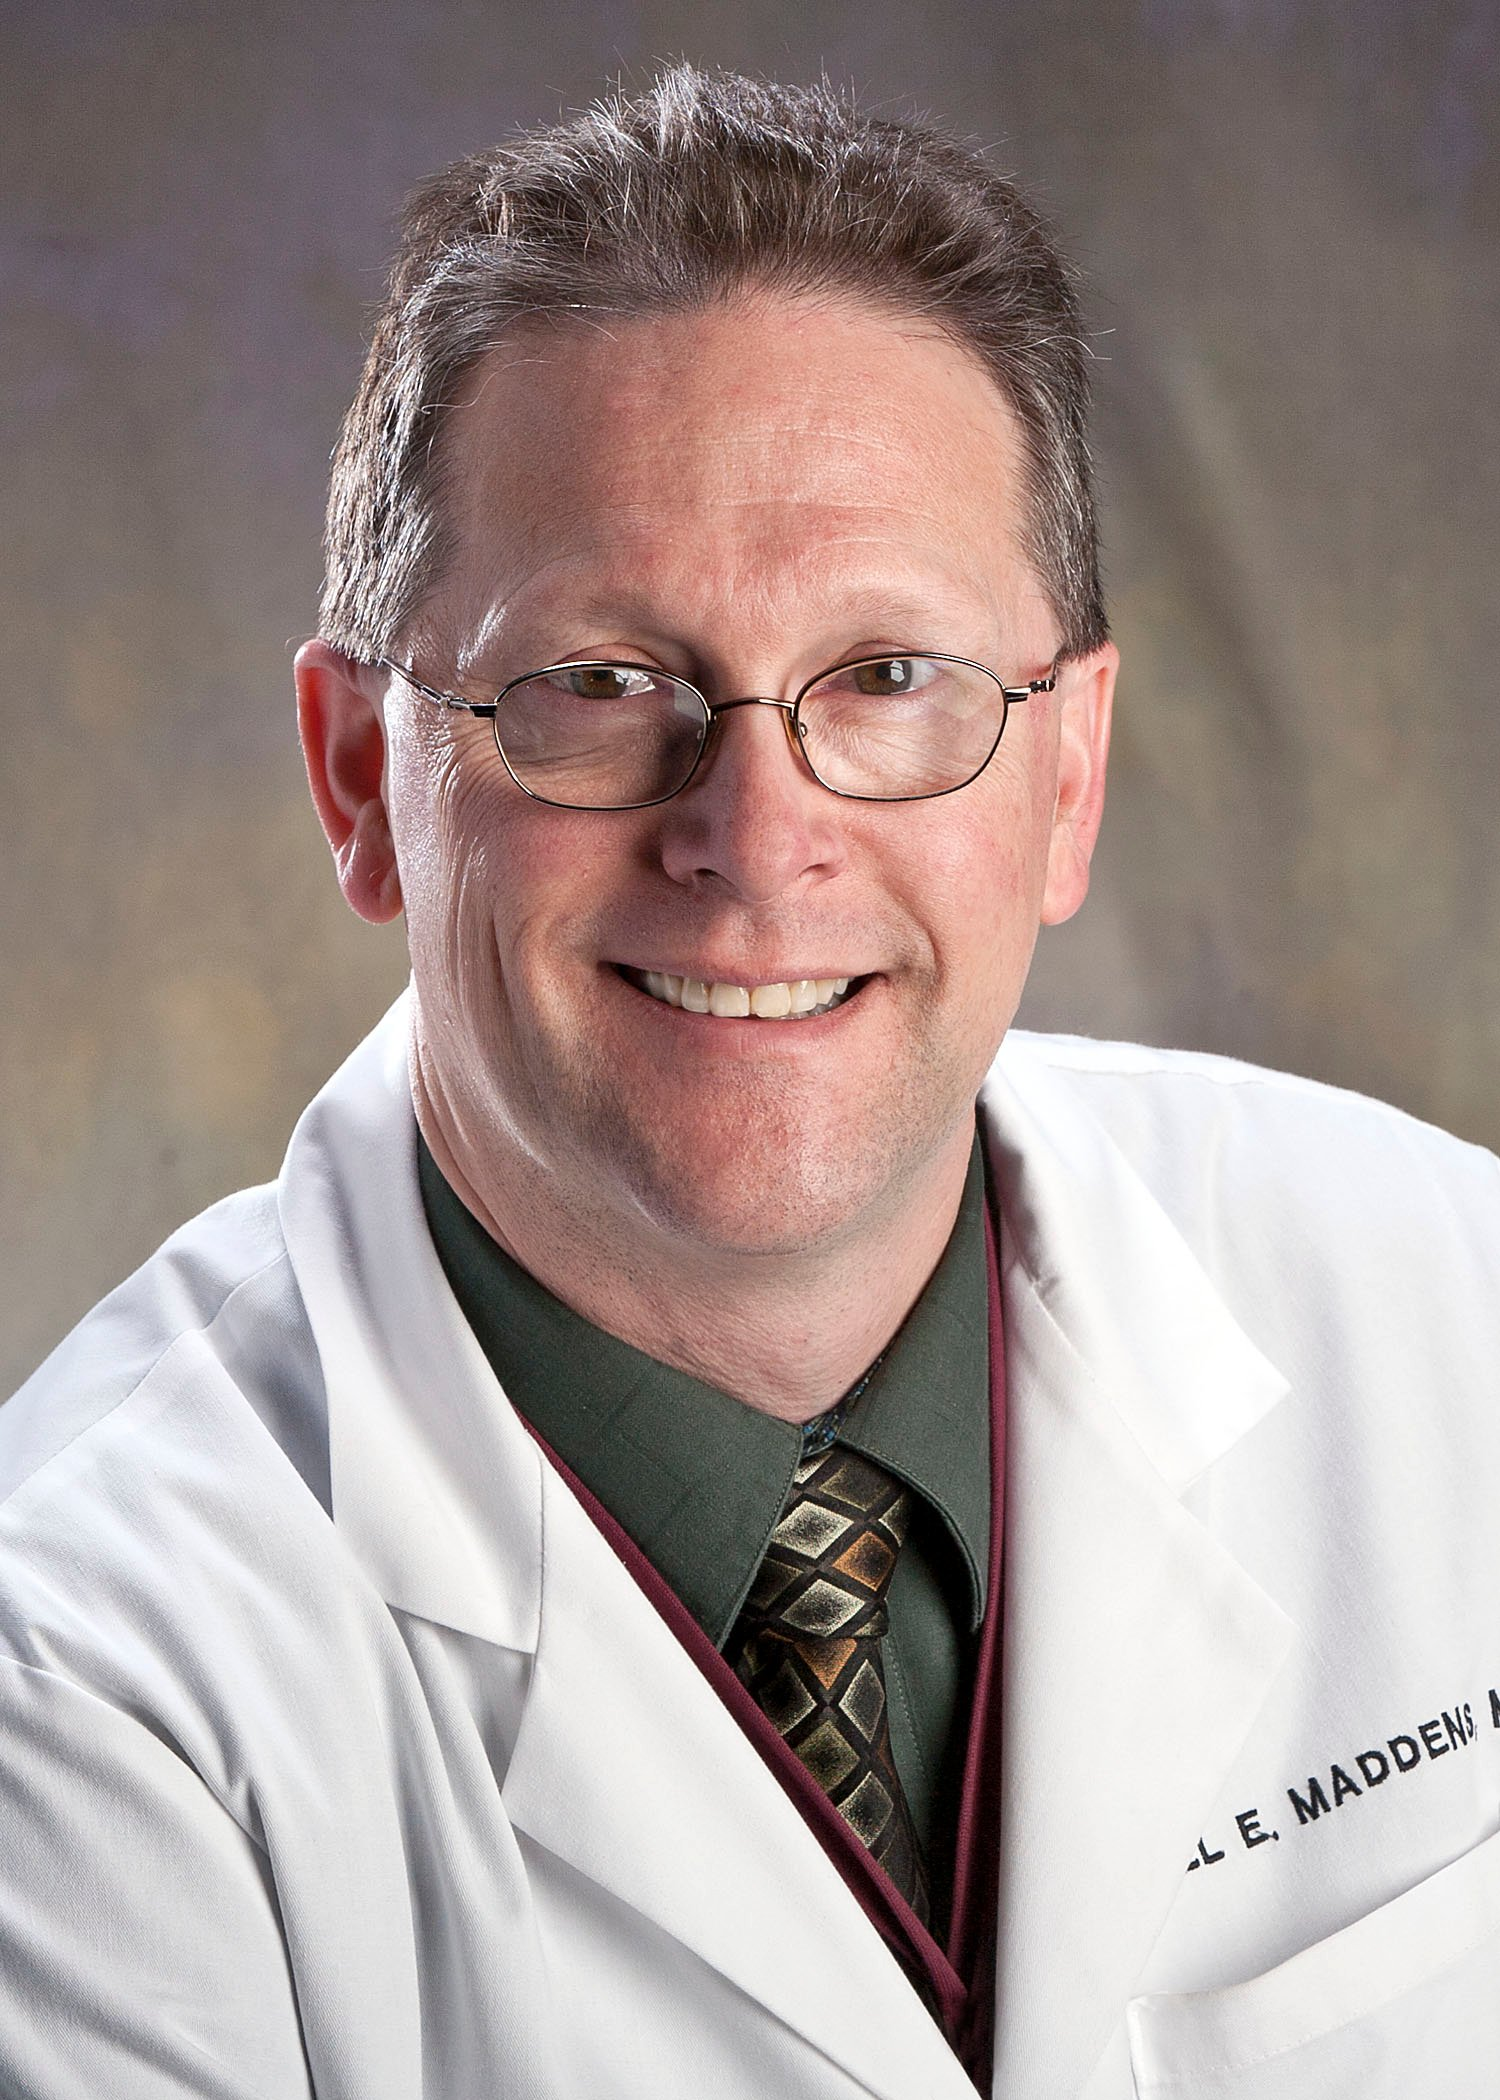 Michael Maddens, MD - Faculty and Staff Directory - Oakland